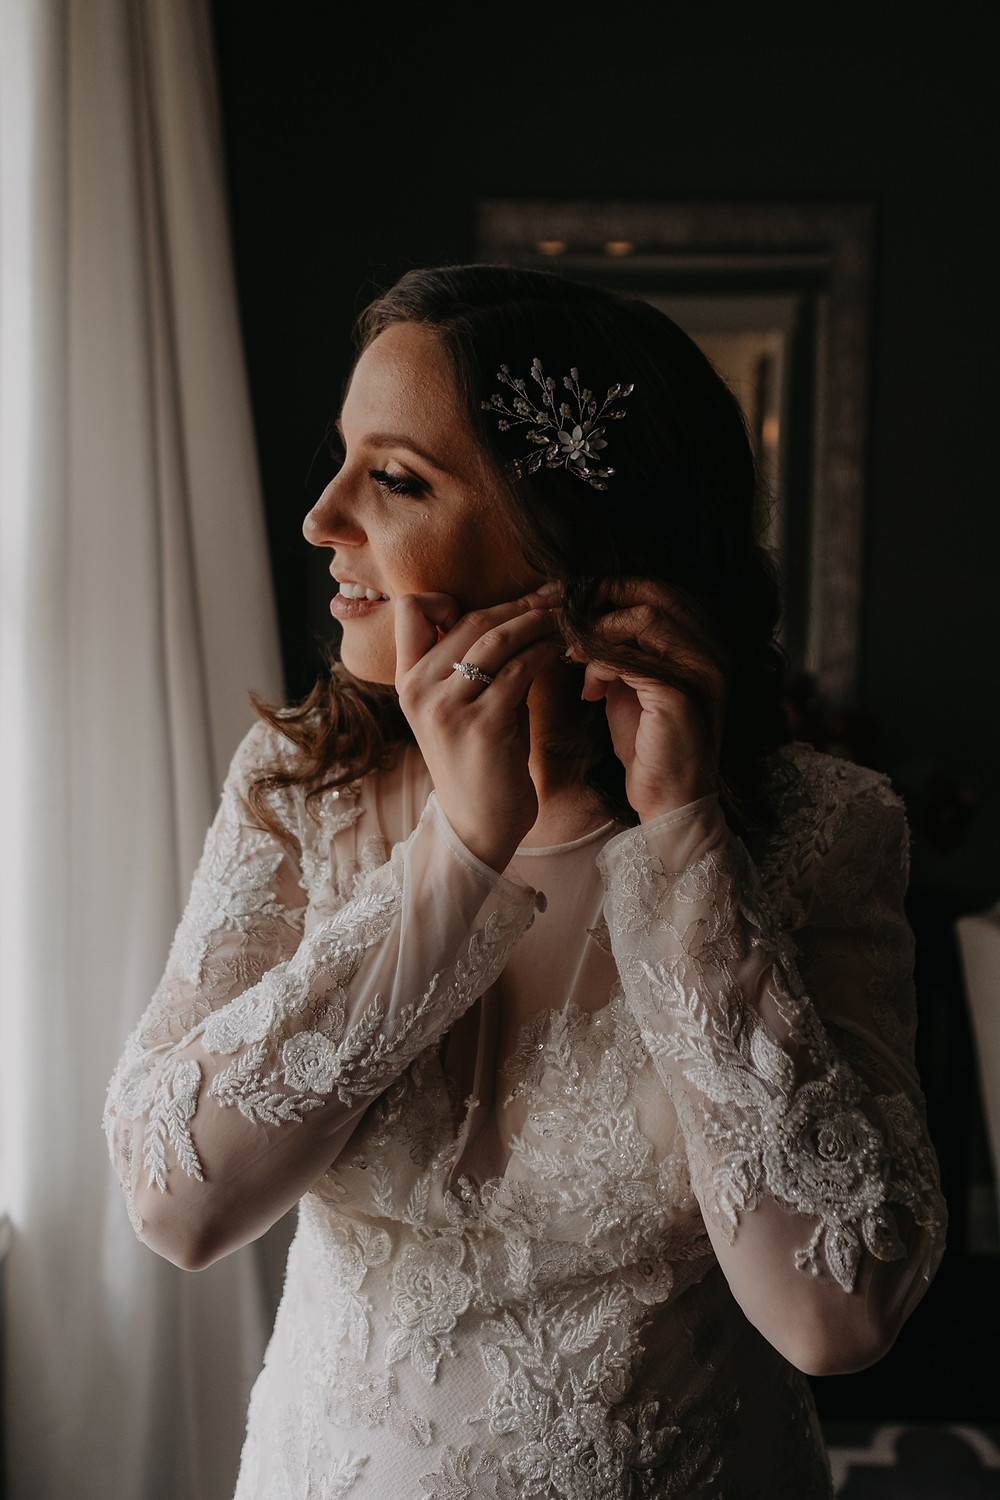 Bride getting ready for wedding day. Photographed by Nicole Leanne Photography.